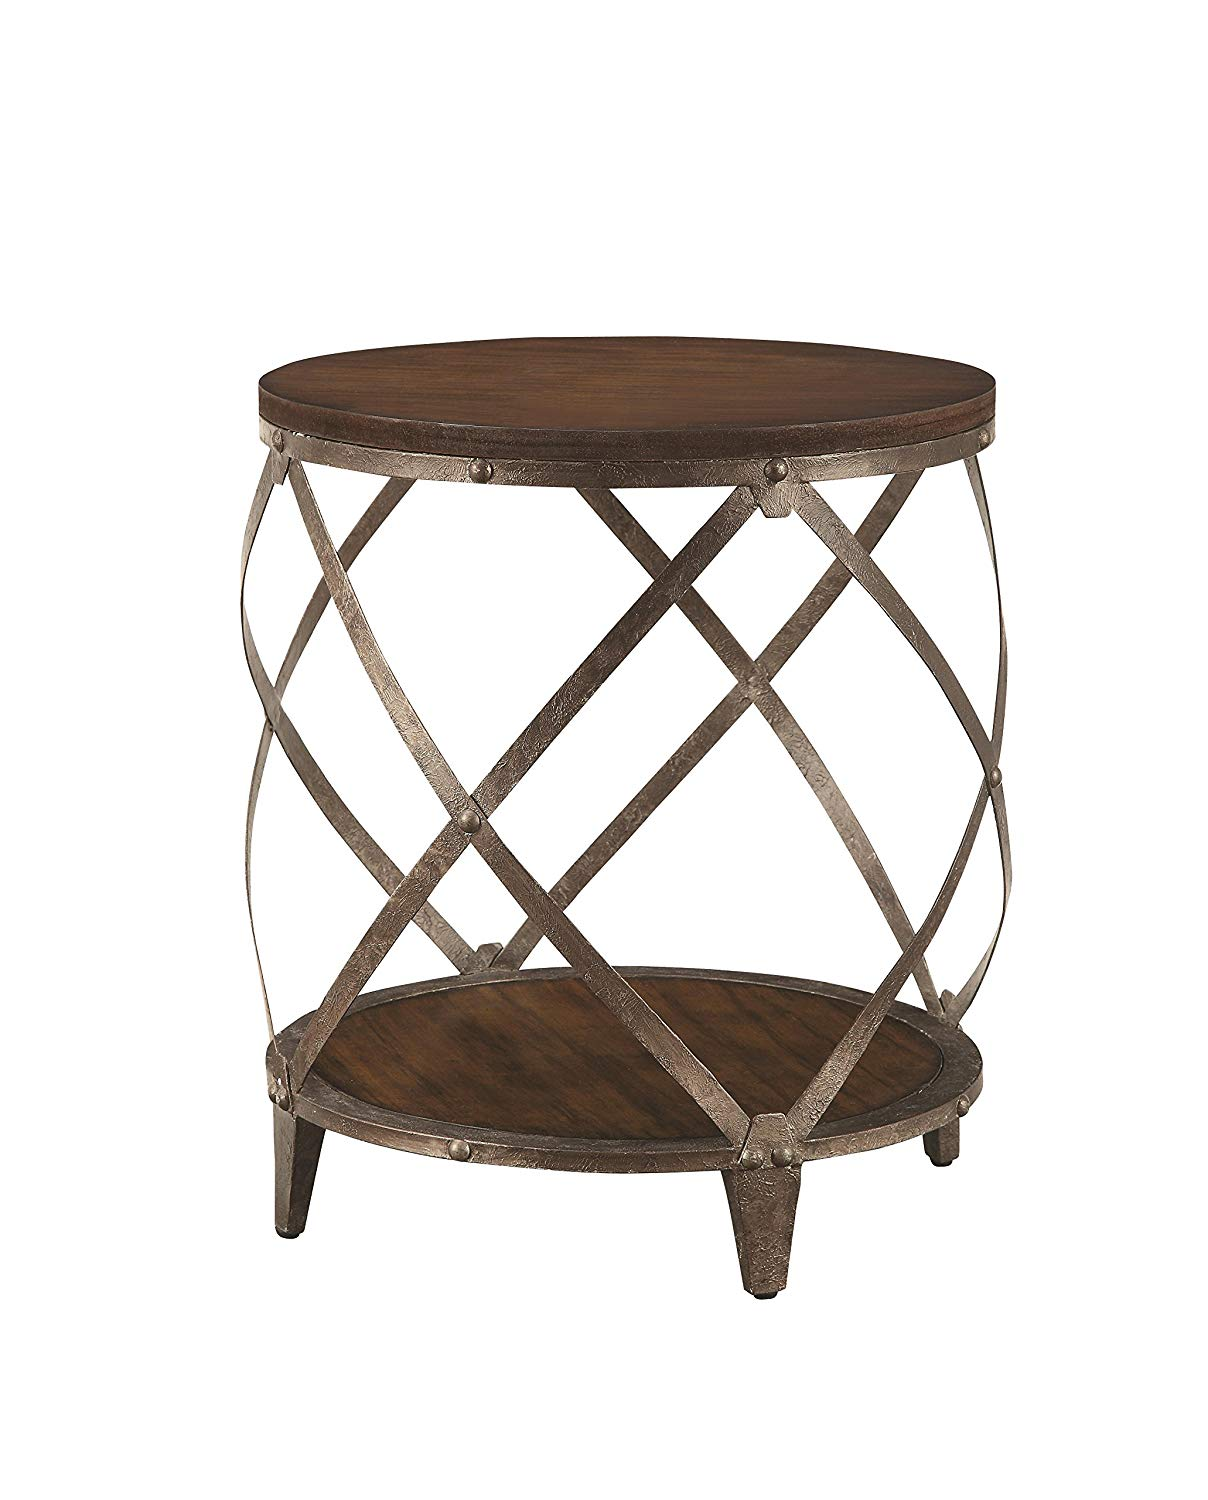 metal accent table with drum shape brown kitchen dining threshold grill tools clear glass lamps for bedroom room chairs hampton bay patio set living centerpiece resin furniture